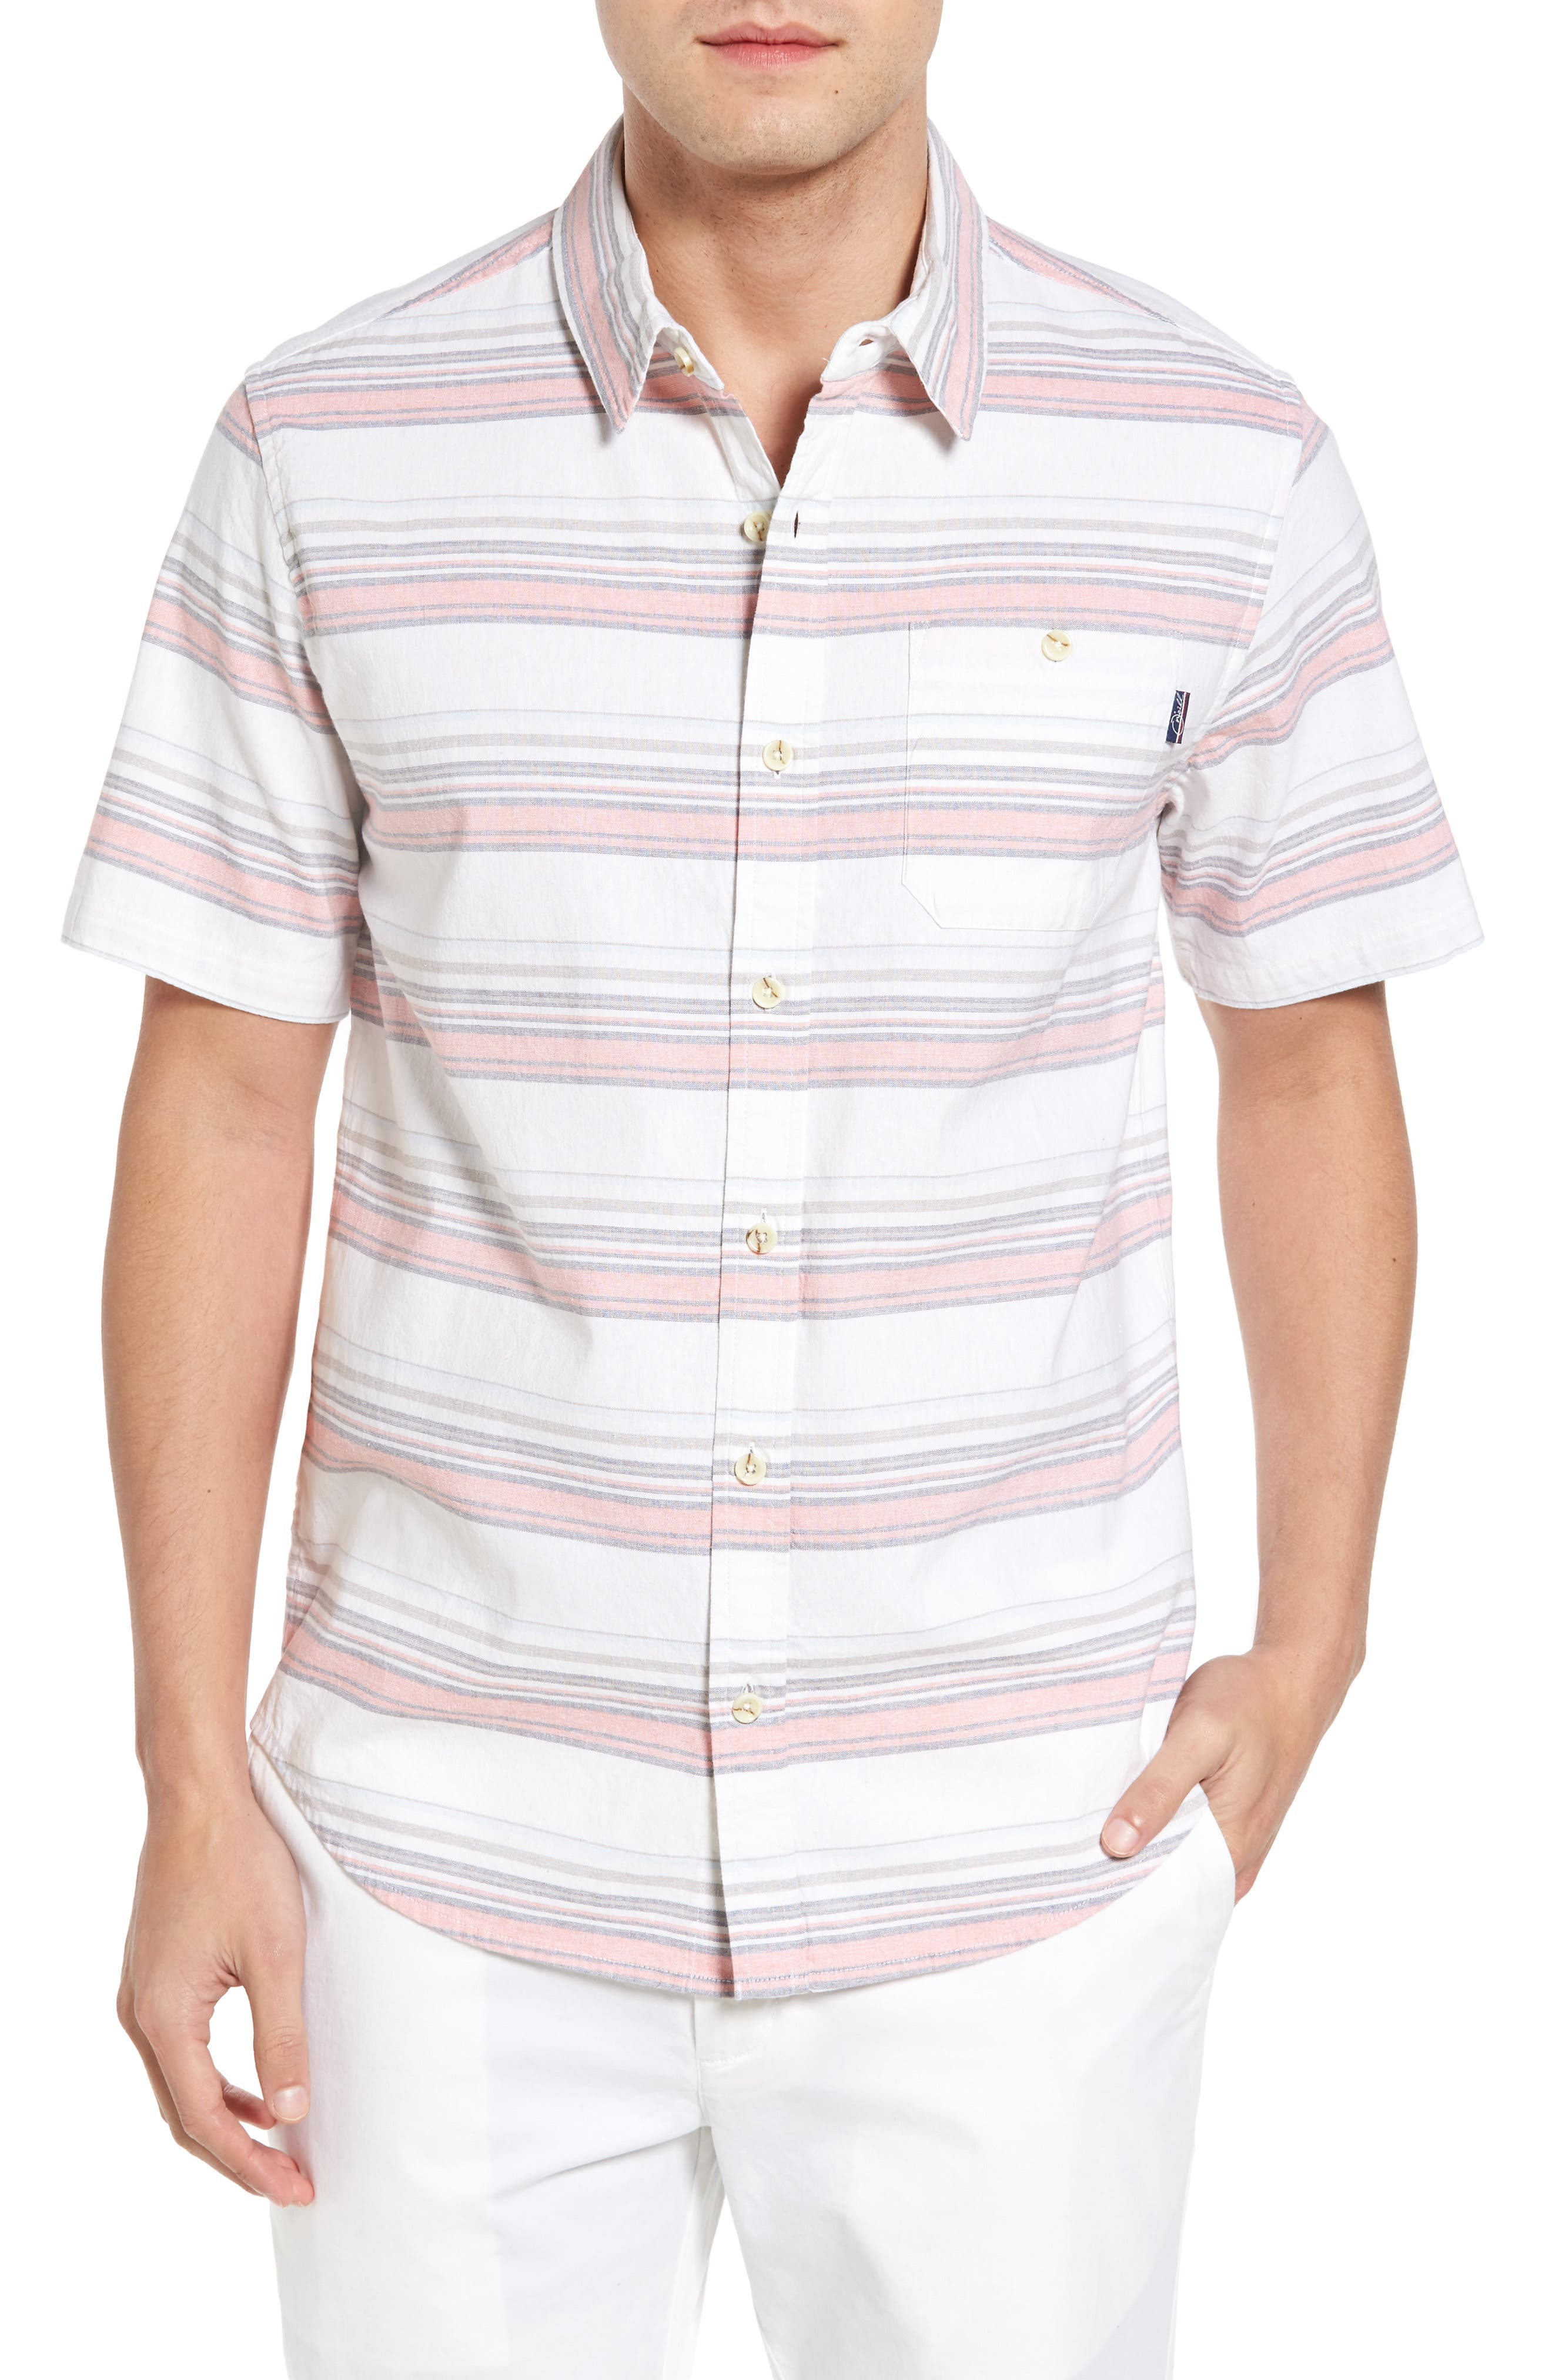 Pura Vida Sport Shirt,                             Main thumbnail 1, color,                             109